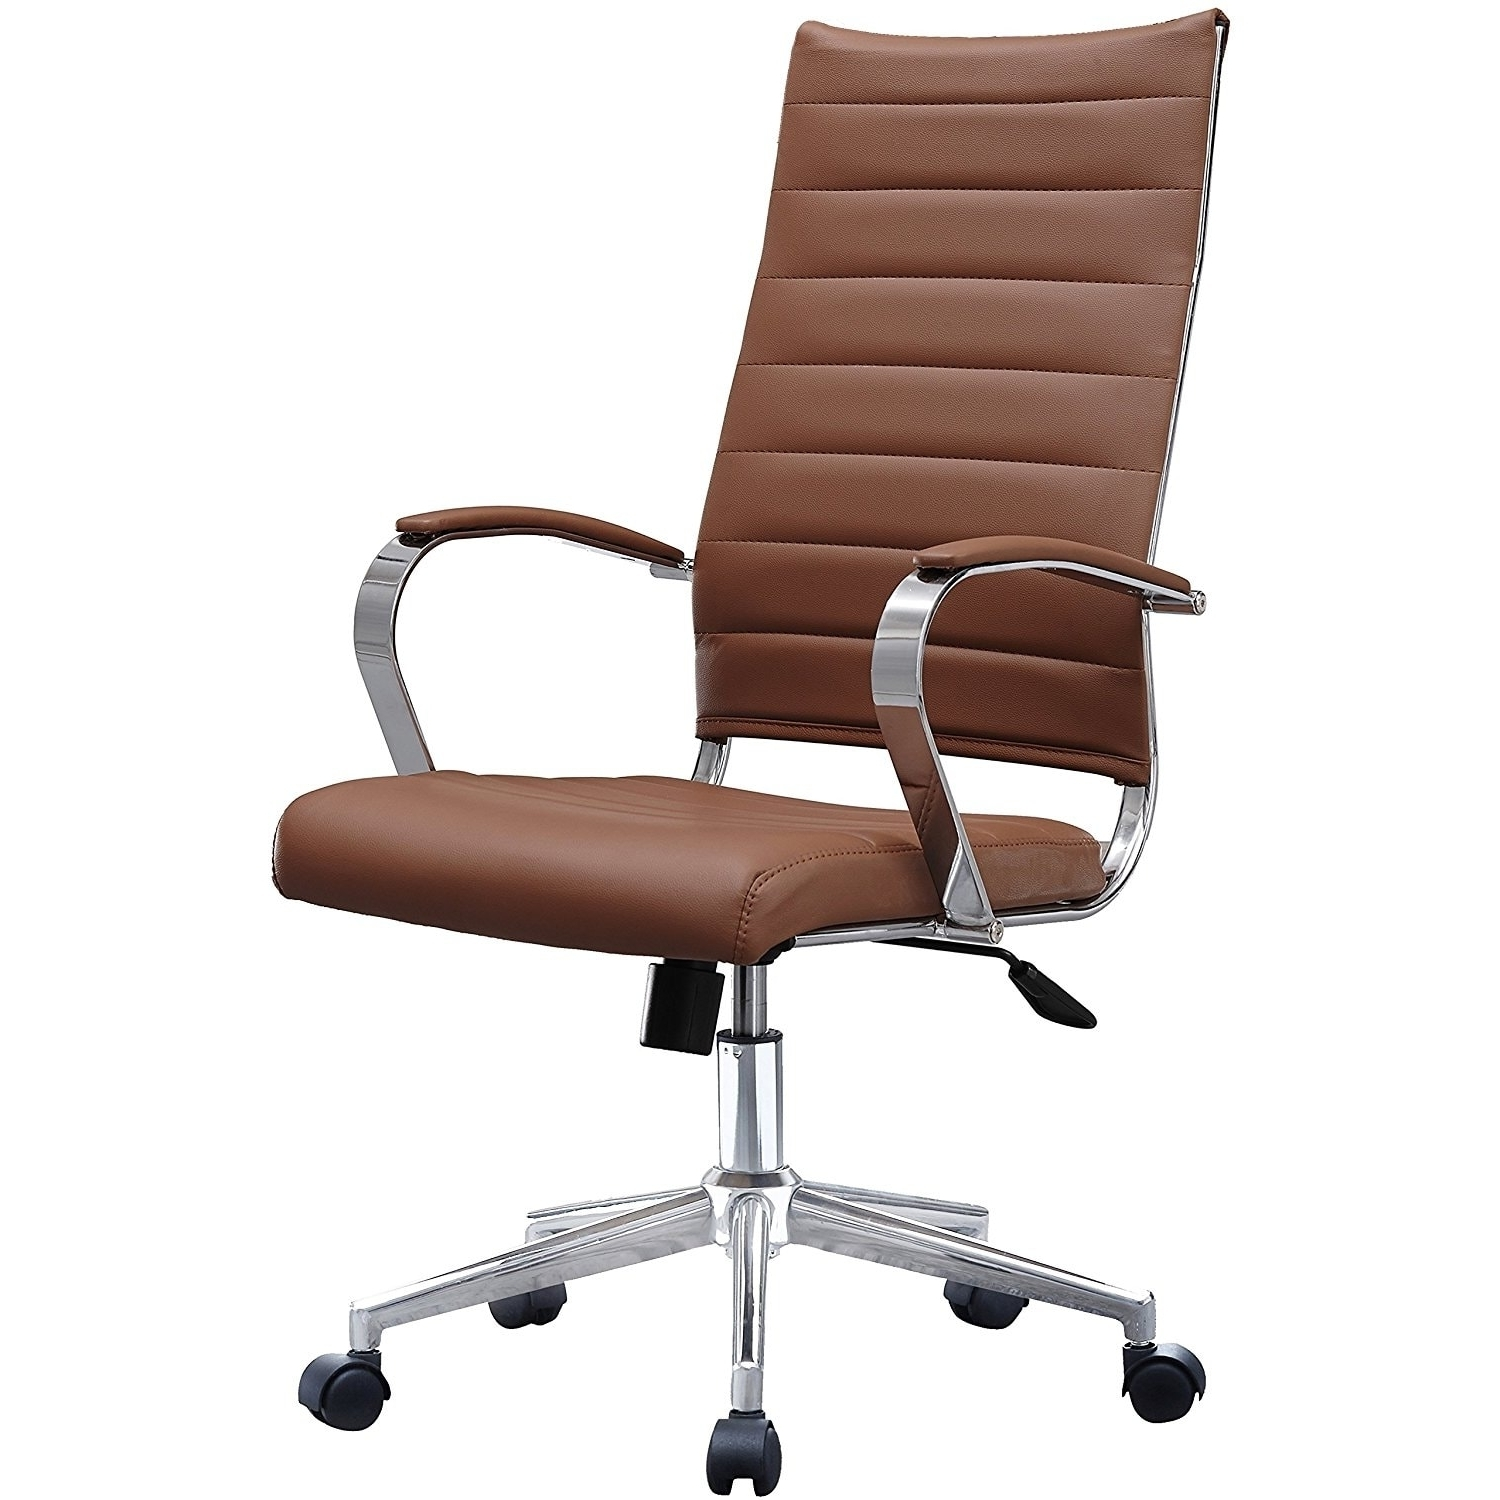 Widely Used Tan Brown Mid Back Executive Office Chairs Intended For 2Xhome  Modern Brown High Back Office Chair Ribbed Pu Leather (View 18 of 20)